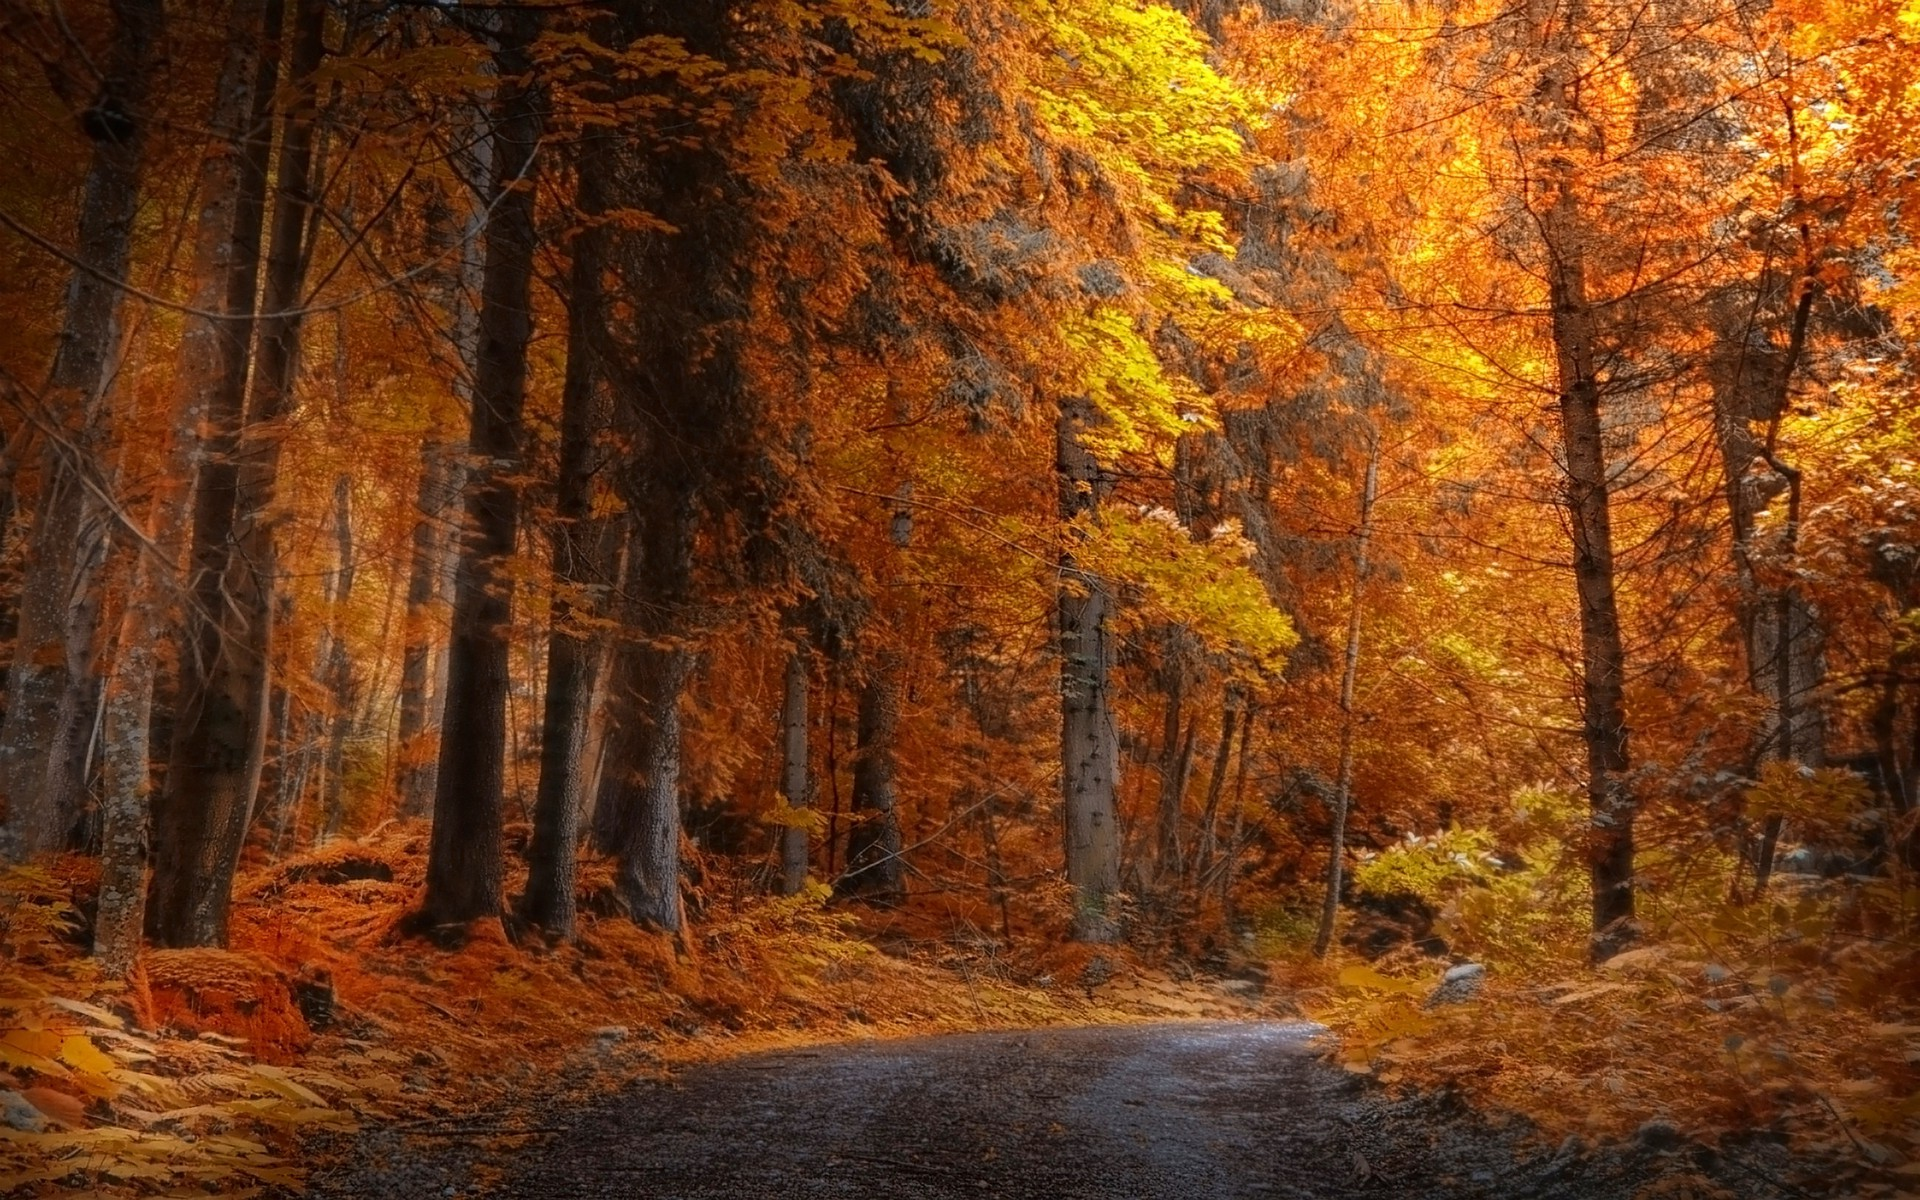 Free Wallpaper Fall 1600x900 Landscape Nature Fall Forest Road Yellow Trees